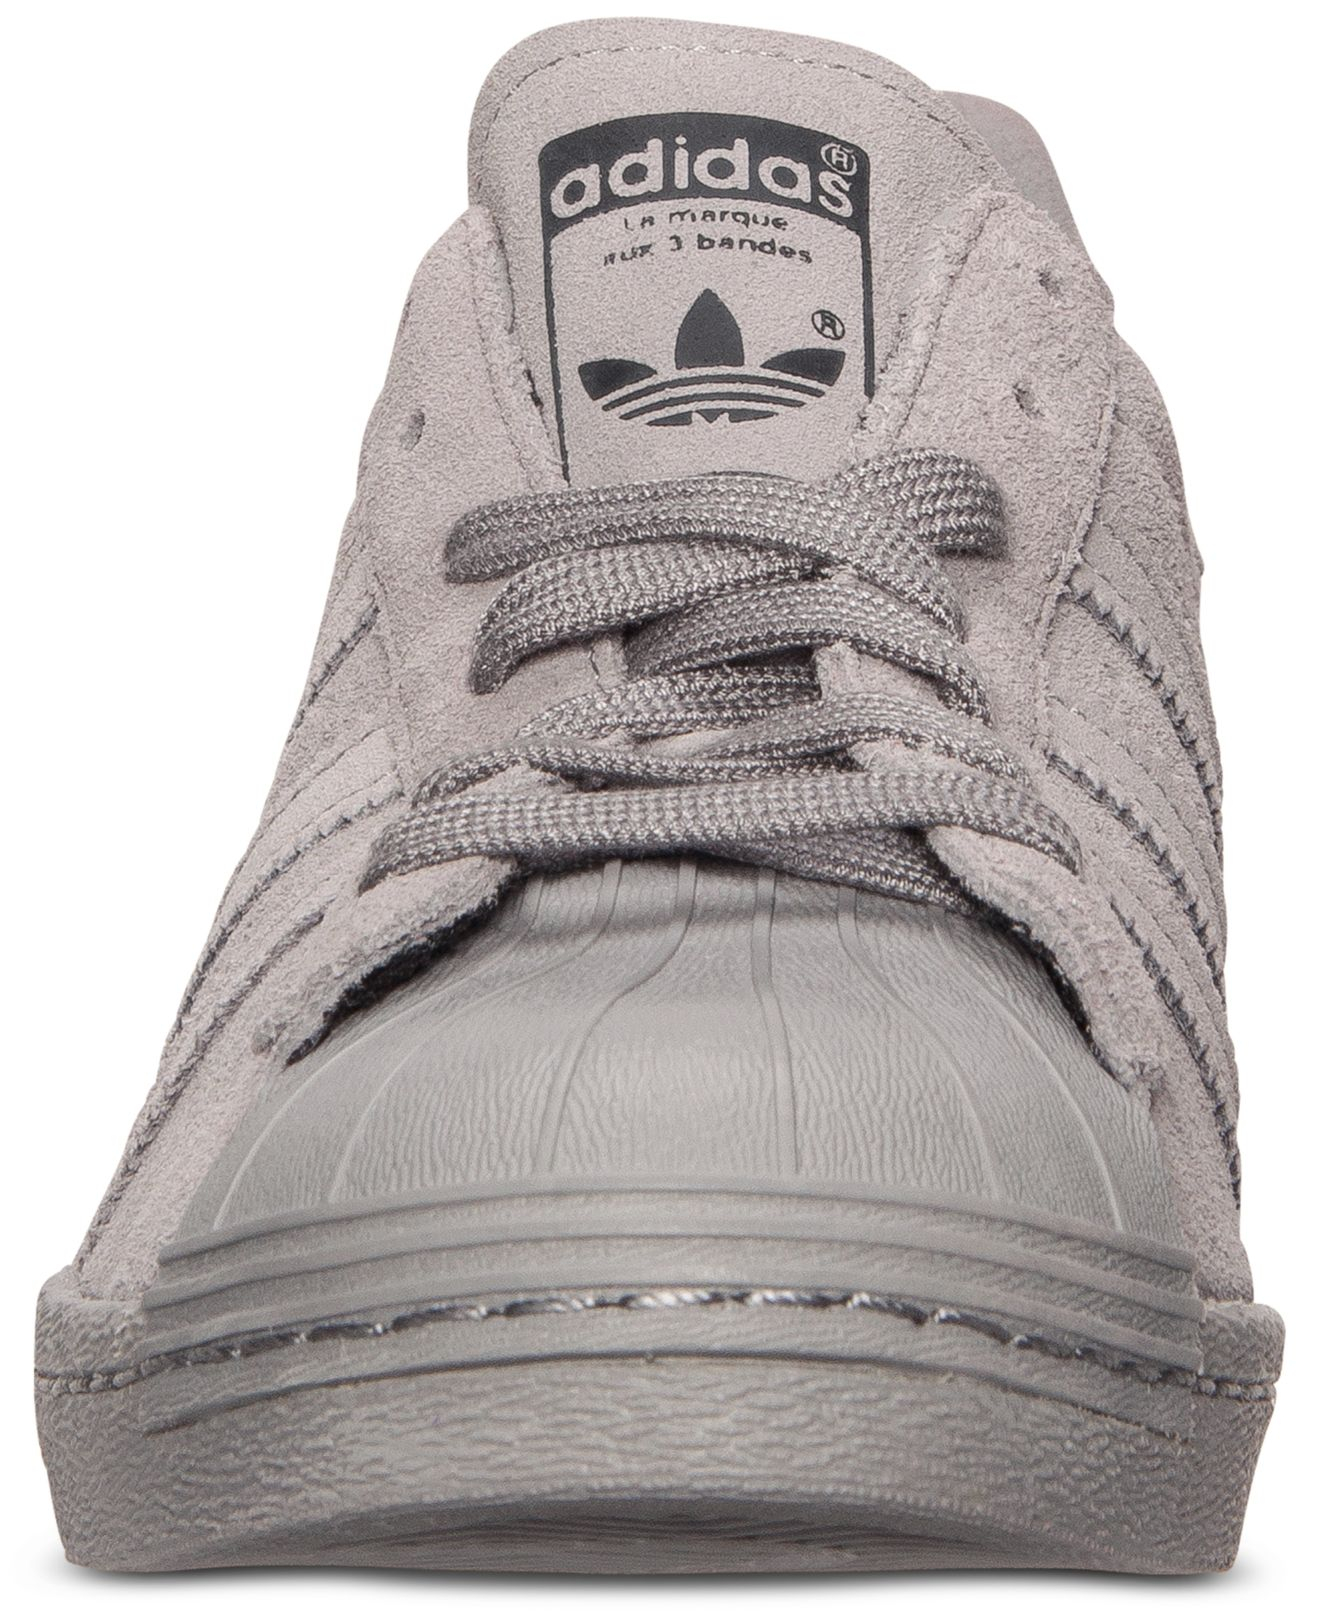 Lyst - adidas Men S Superstar City Berlin Casual Sneakers From ... 9db976af0